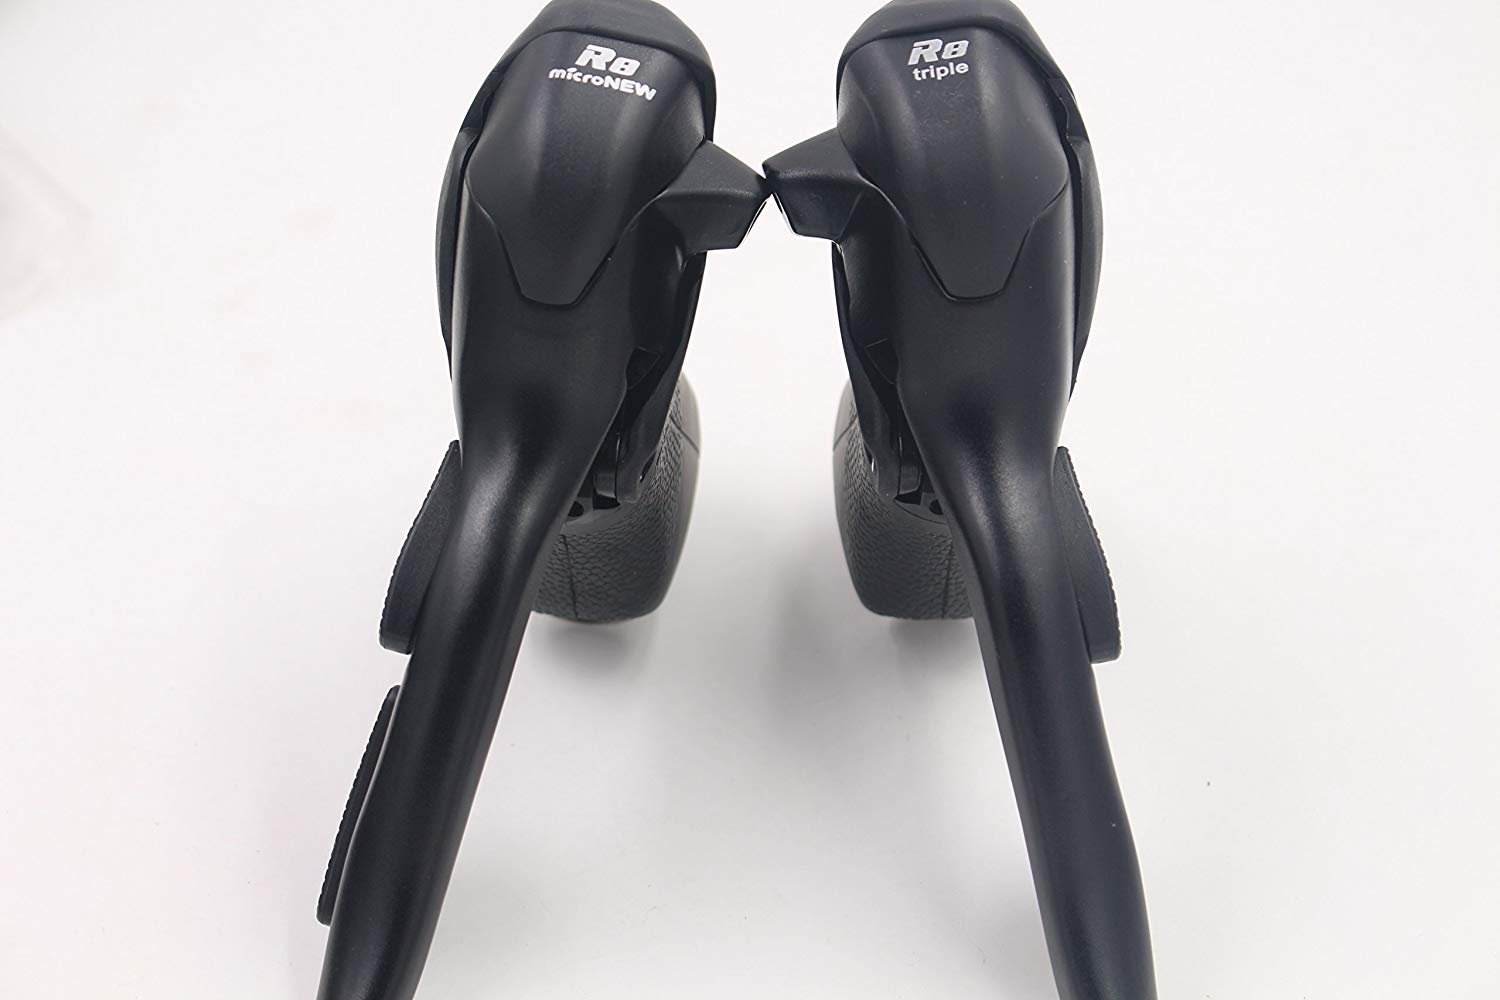 MicroNEW Shifter Dual Control Levers SB-R483 3 x 8 Speed Trip Shifters Road Bicycle Derailleur Compatible for Shimano STI Lever Set